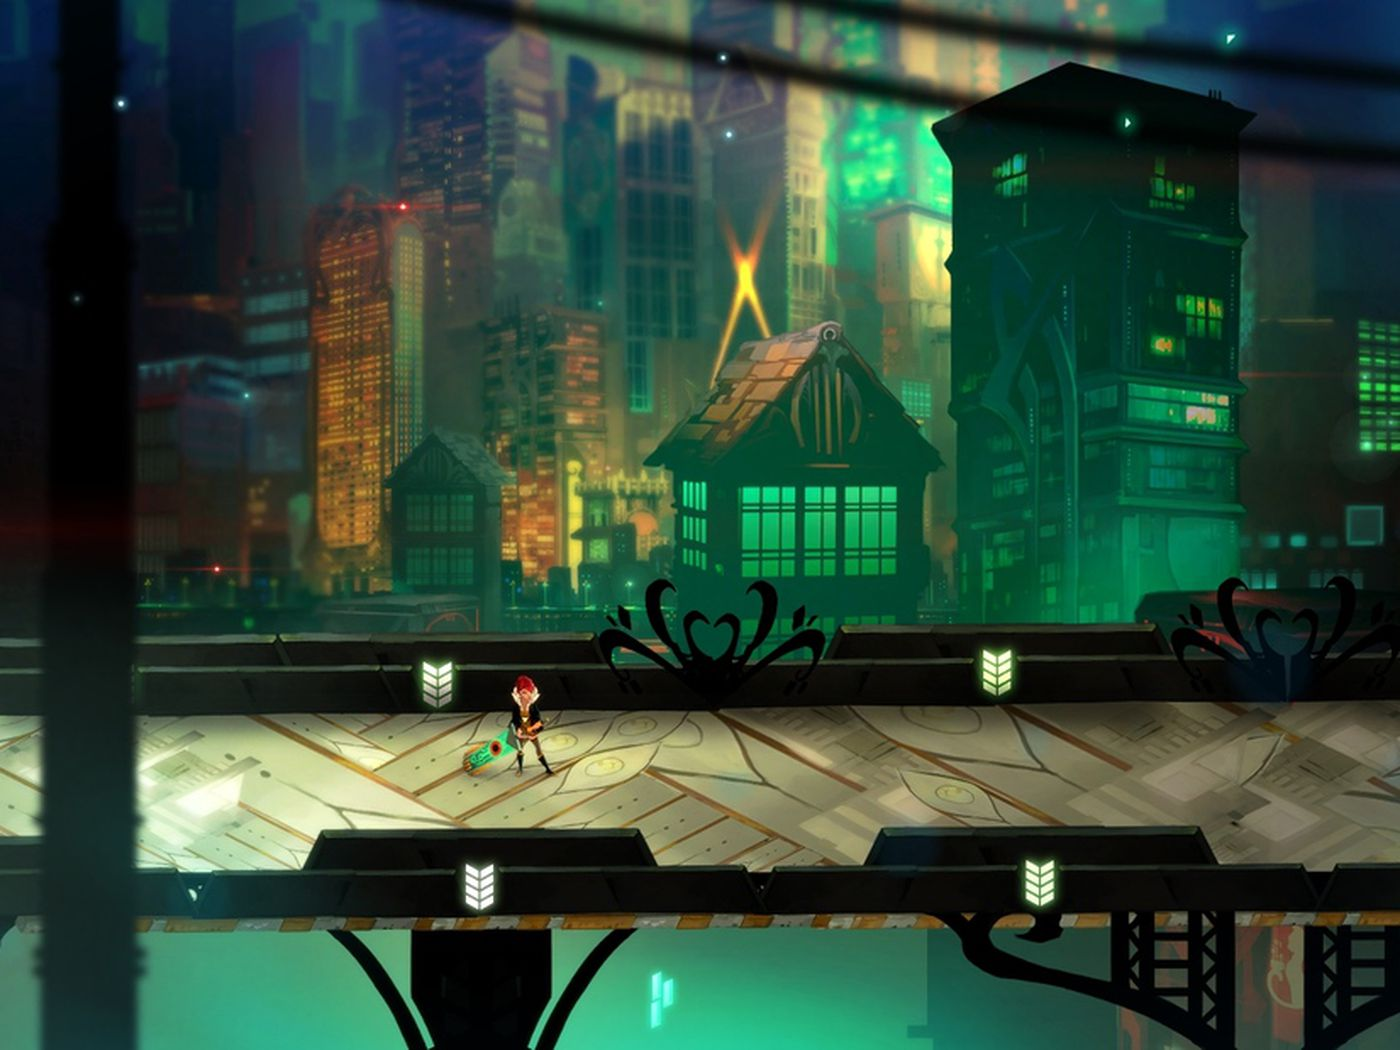 bastion developer supergiant games next title is transistor will